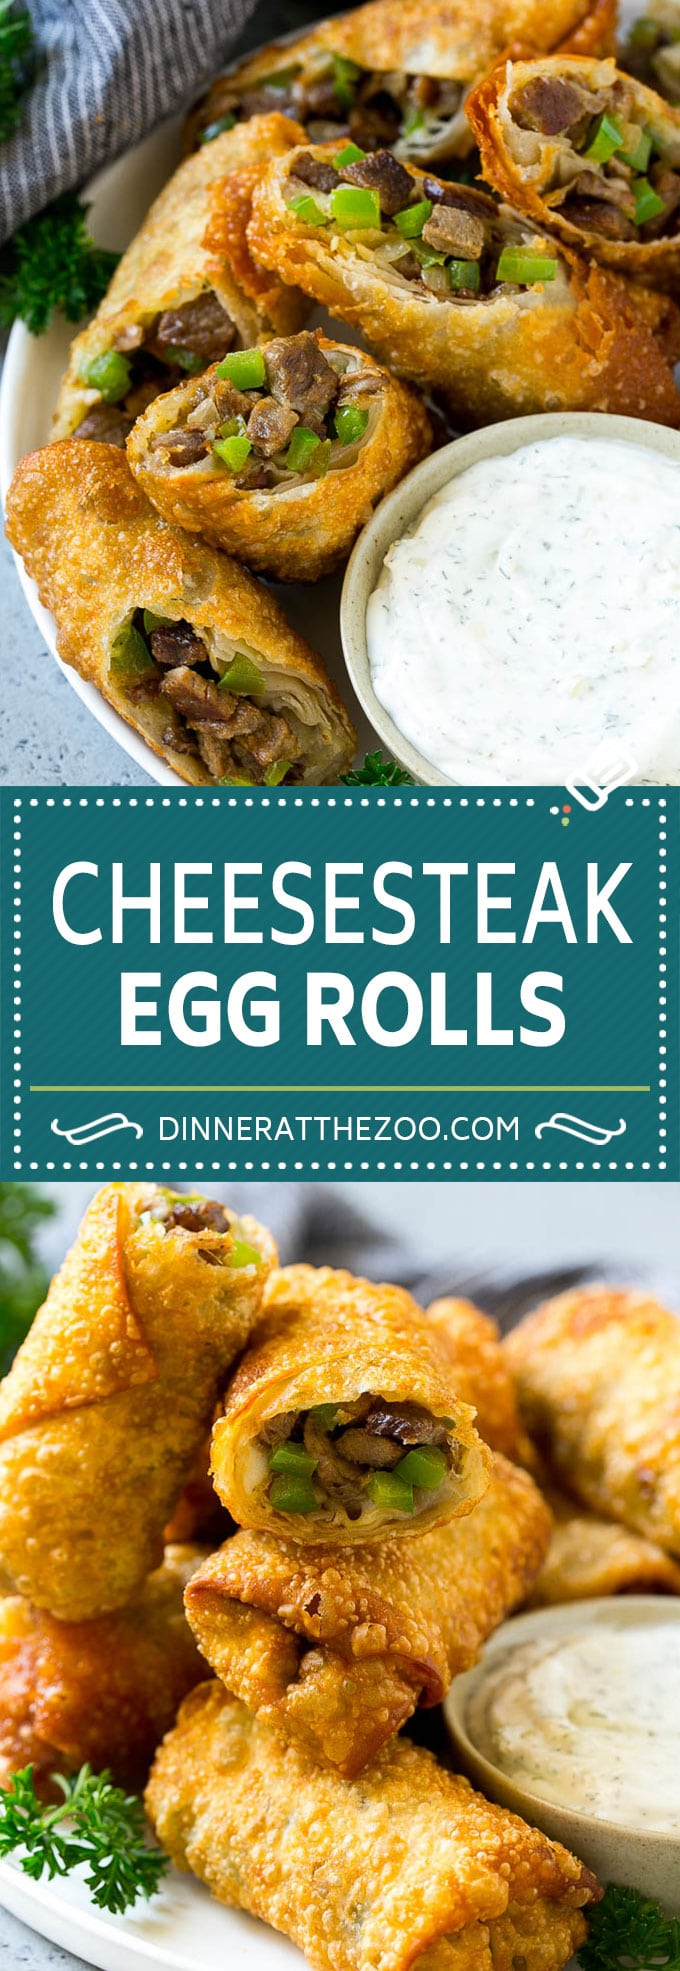 Philly Cheesesteak Egg Rolls | Beef Egg Rolls | Philly Cheesesteak Appetizer #steak #cheese #appetizer #snack #dinneratthezoo